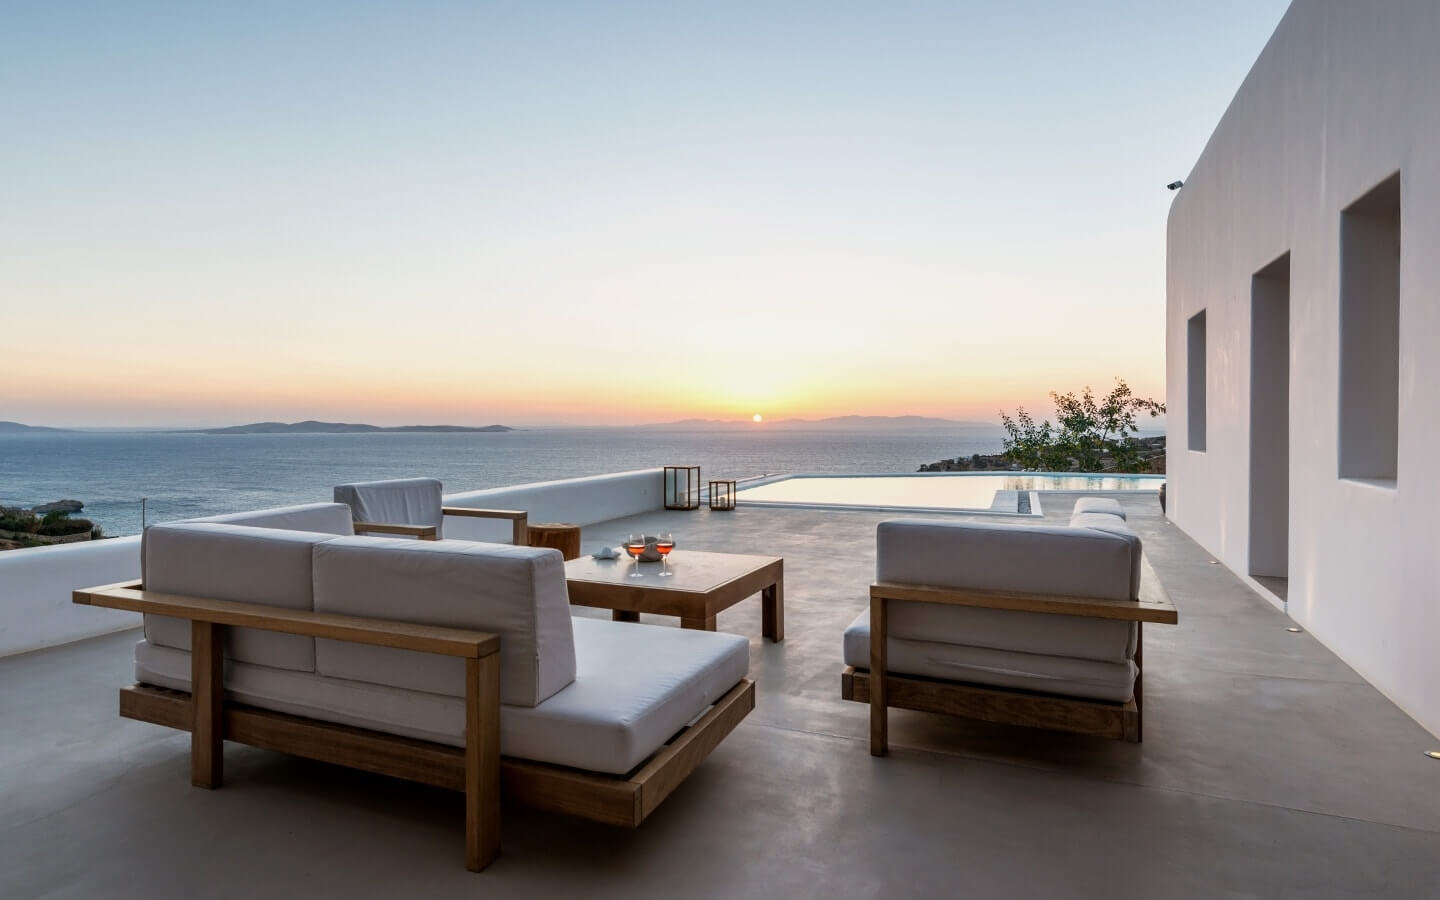 View of the Aegean sea as seen from the Just White Villas, a Luxury retreat for VIPs in Mykonos.